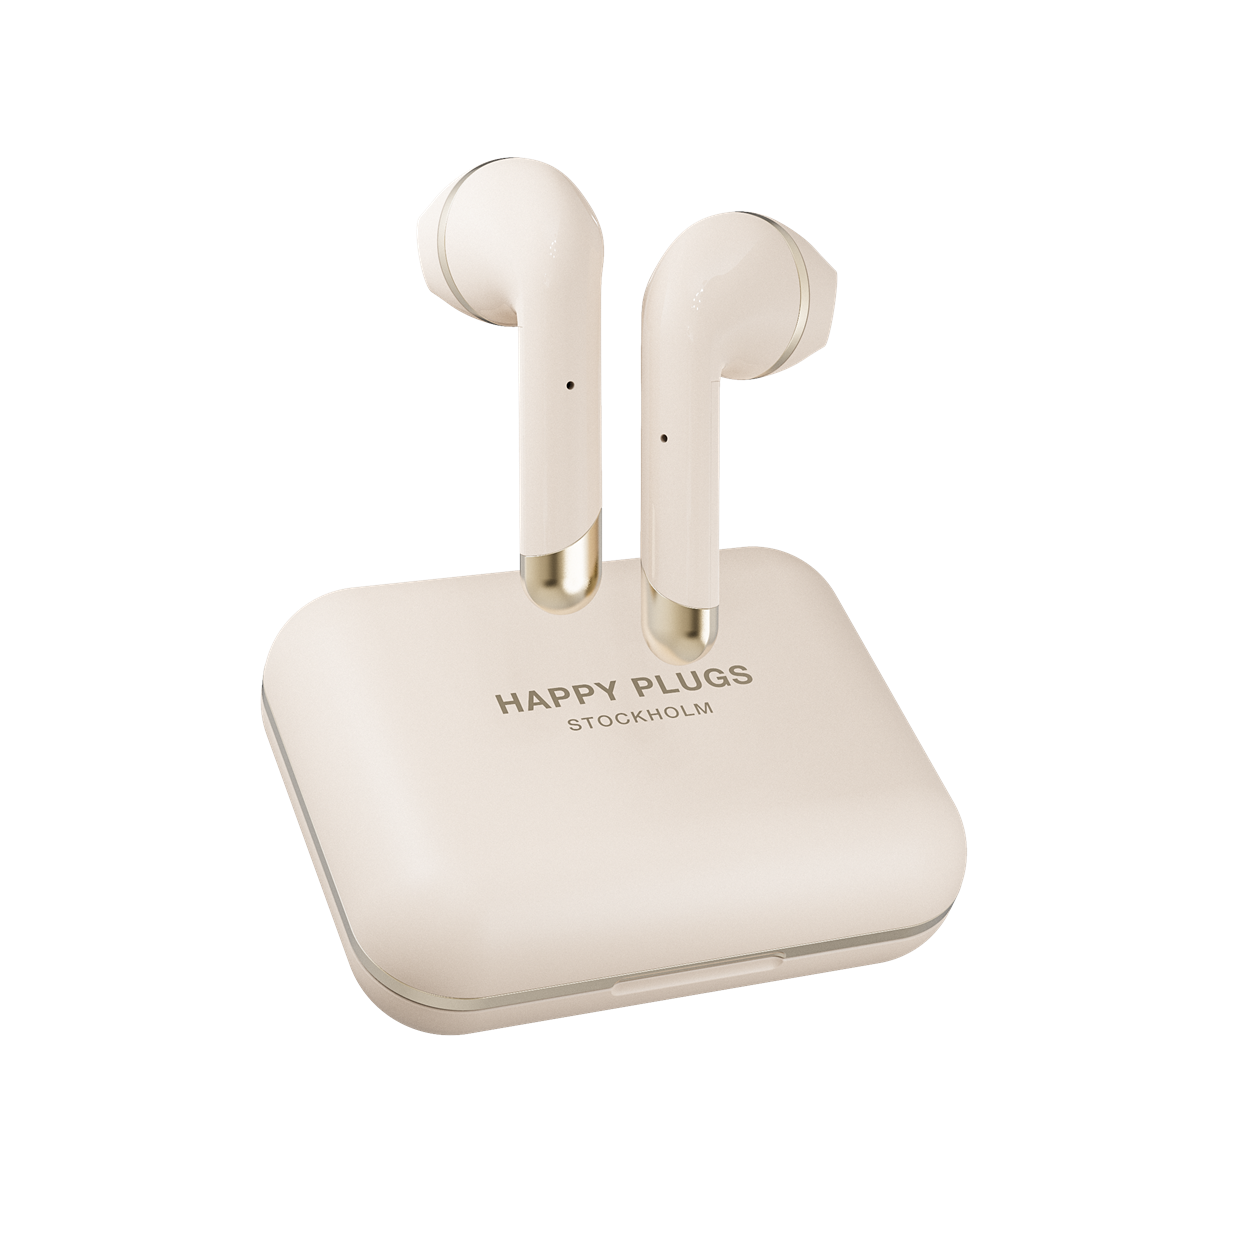 AIR 1 Plus EARBUD